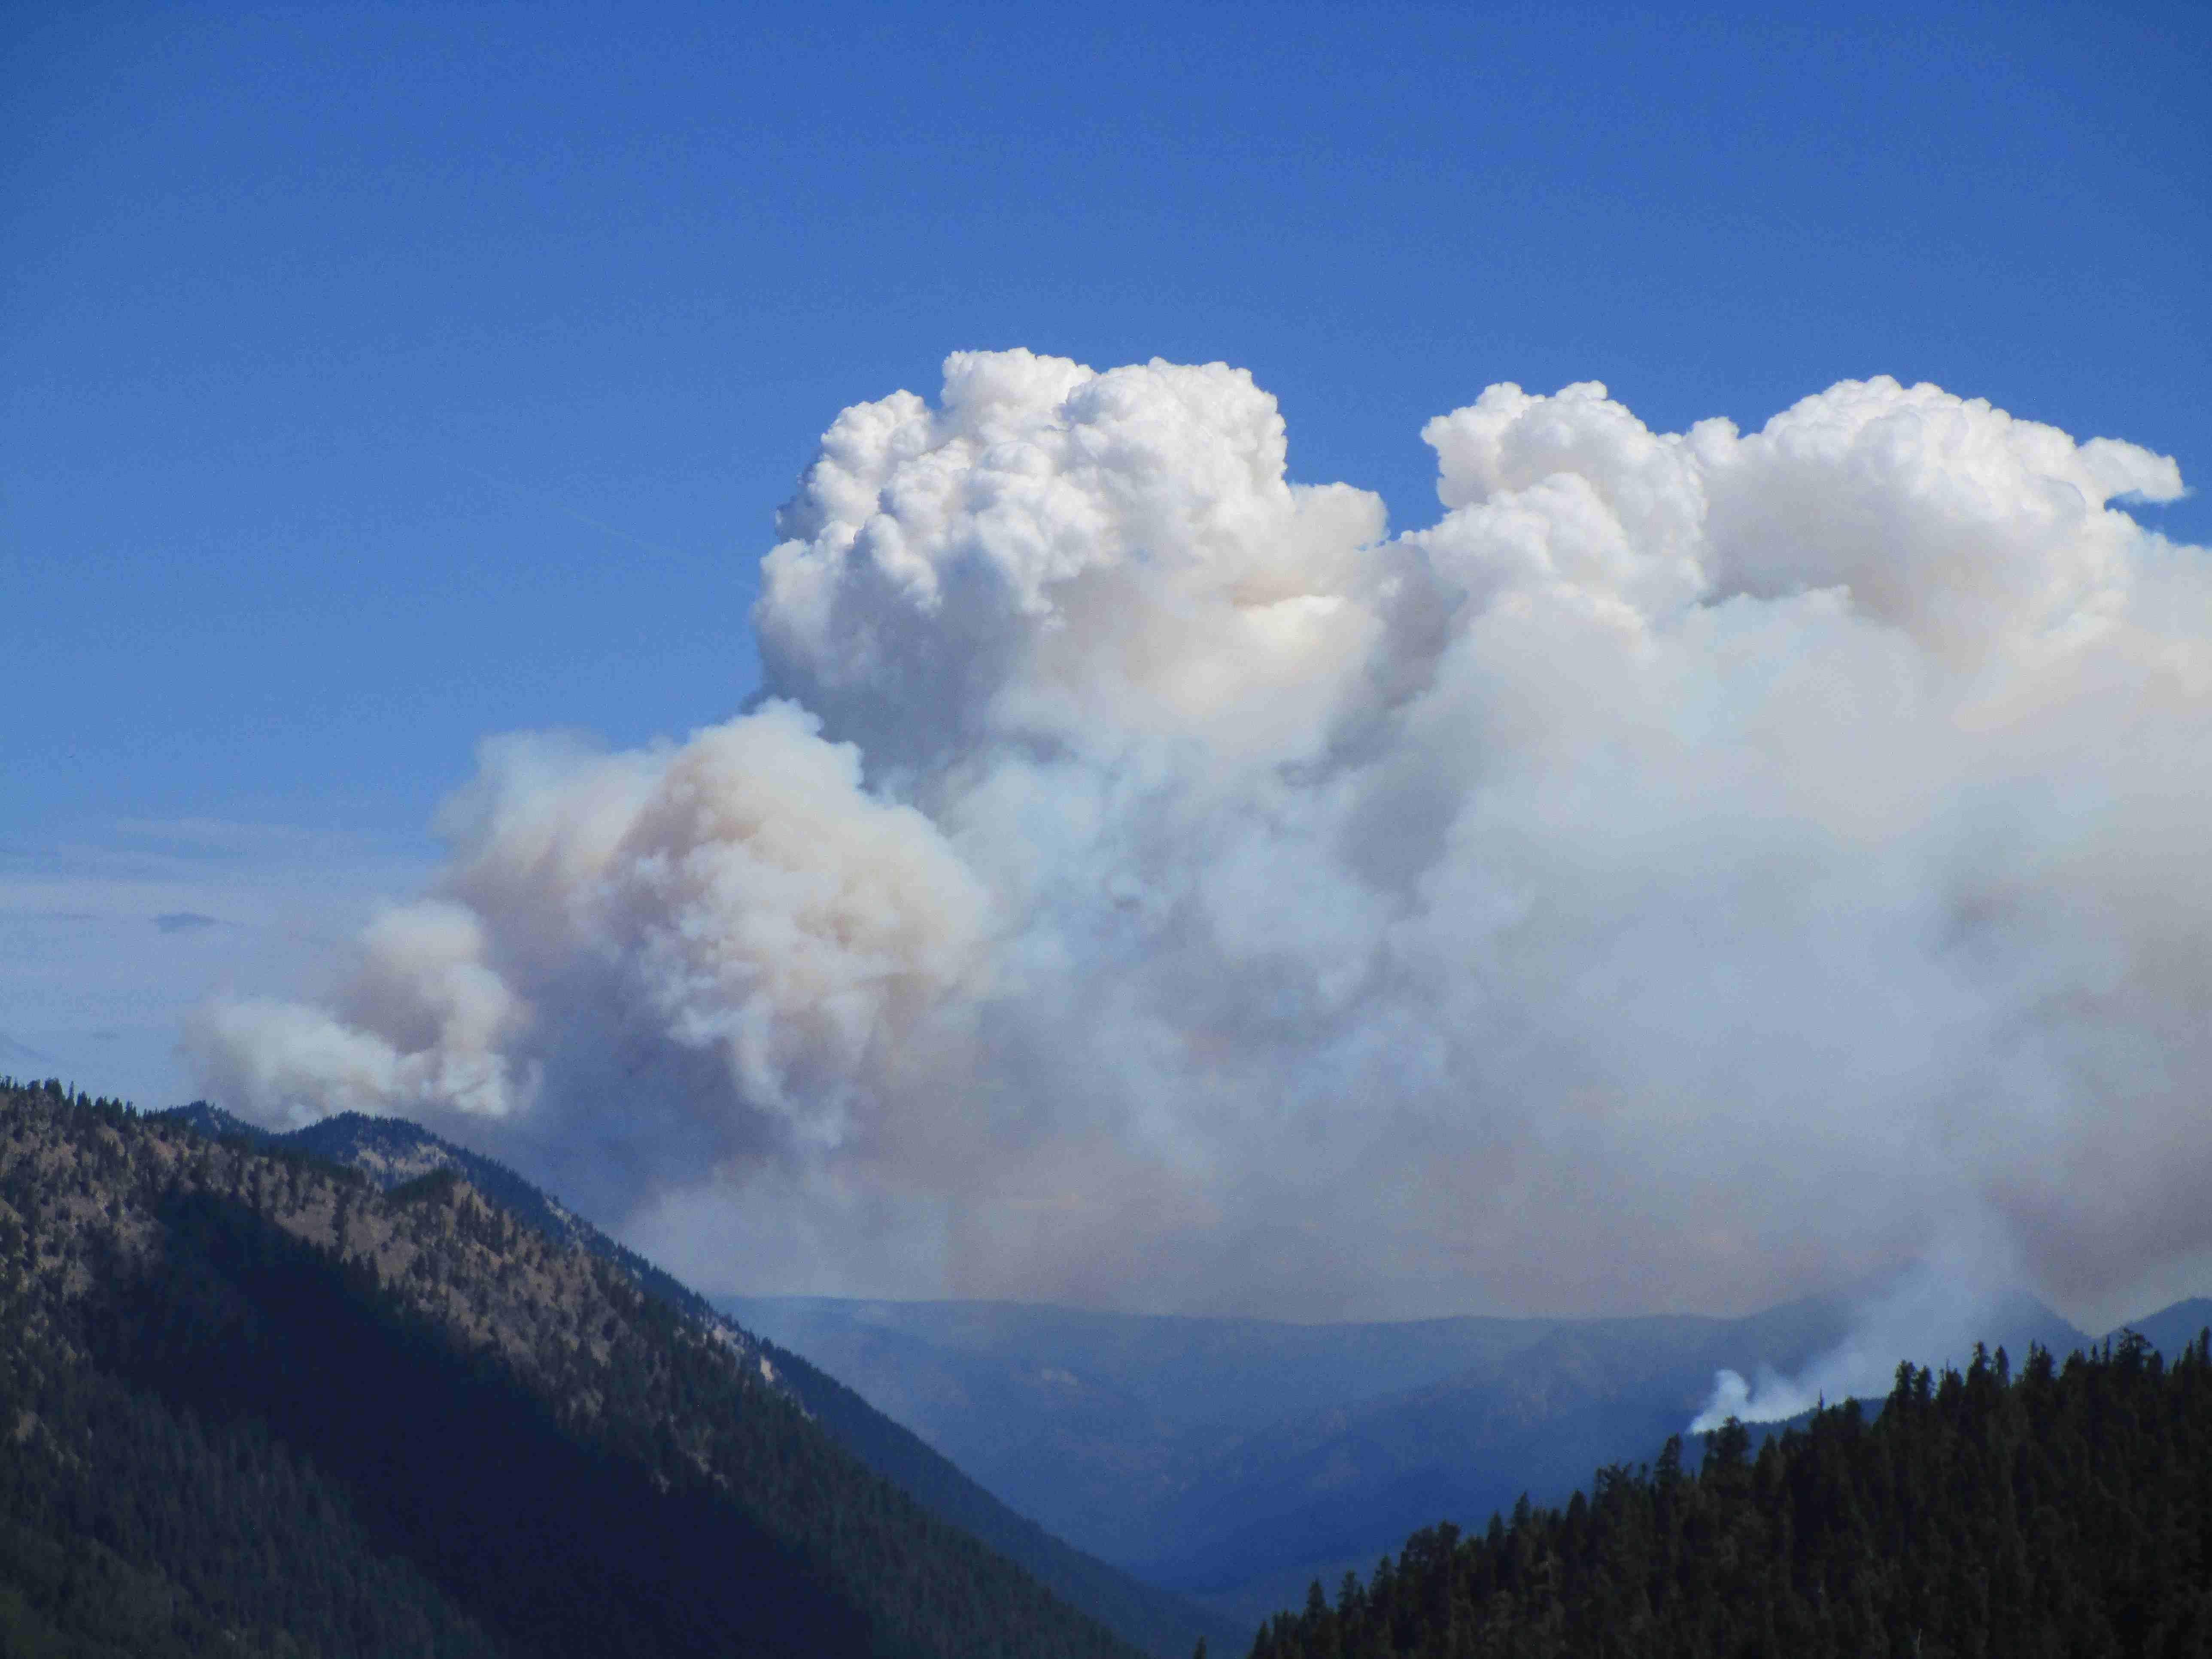 Fire hazards cause road closures near Chinook Pass